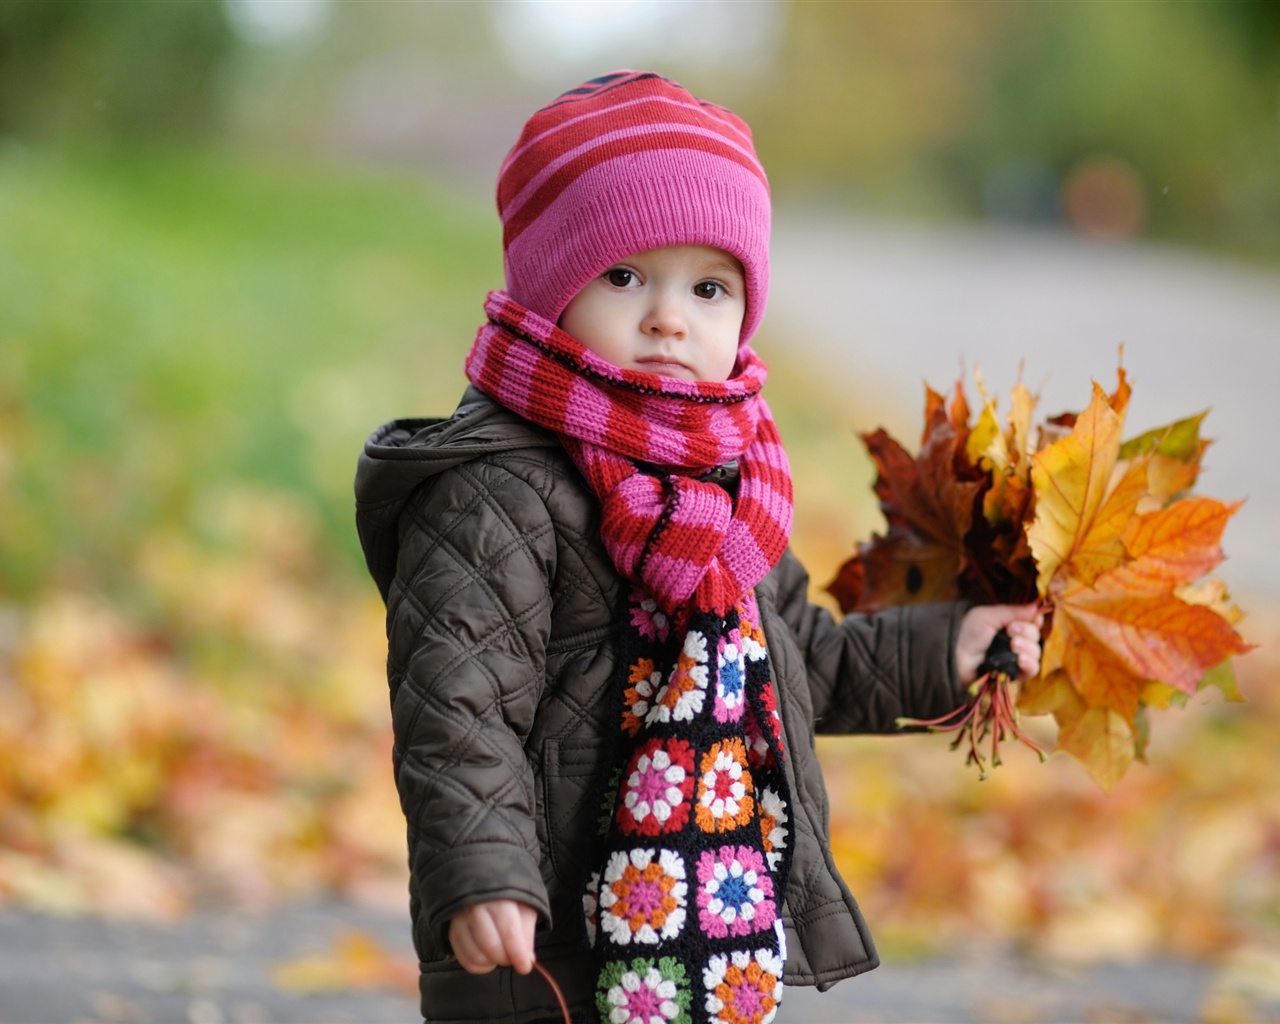 Cute baby in autumn wallpaper - 1280x1024